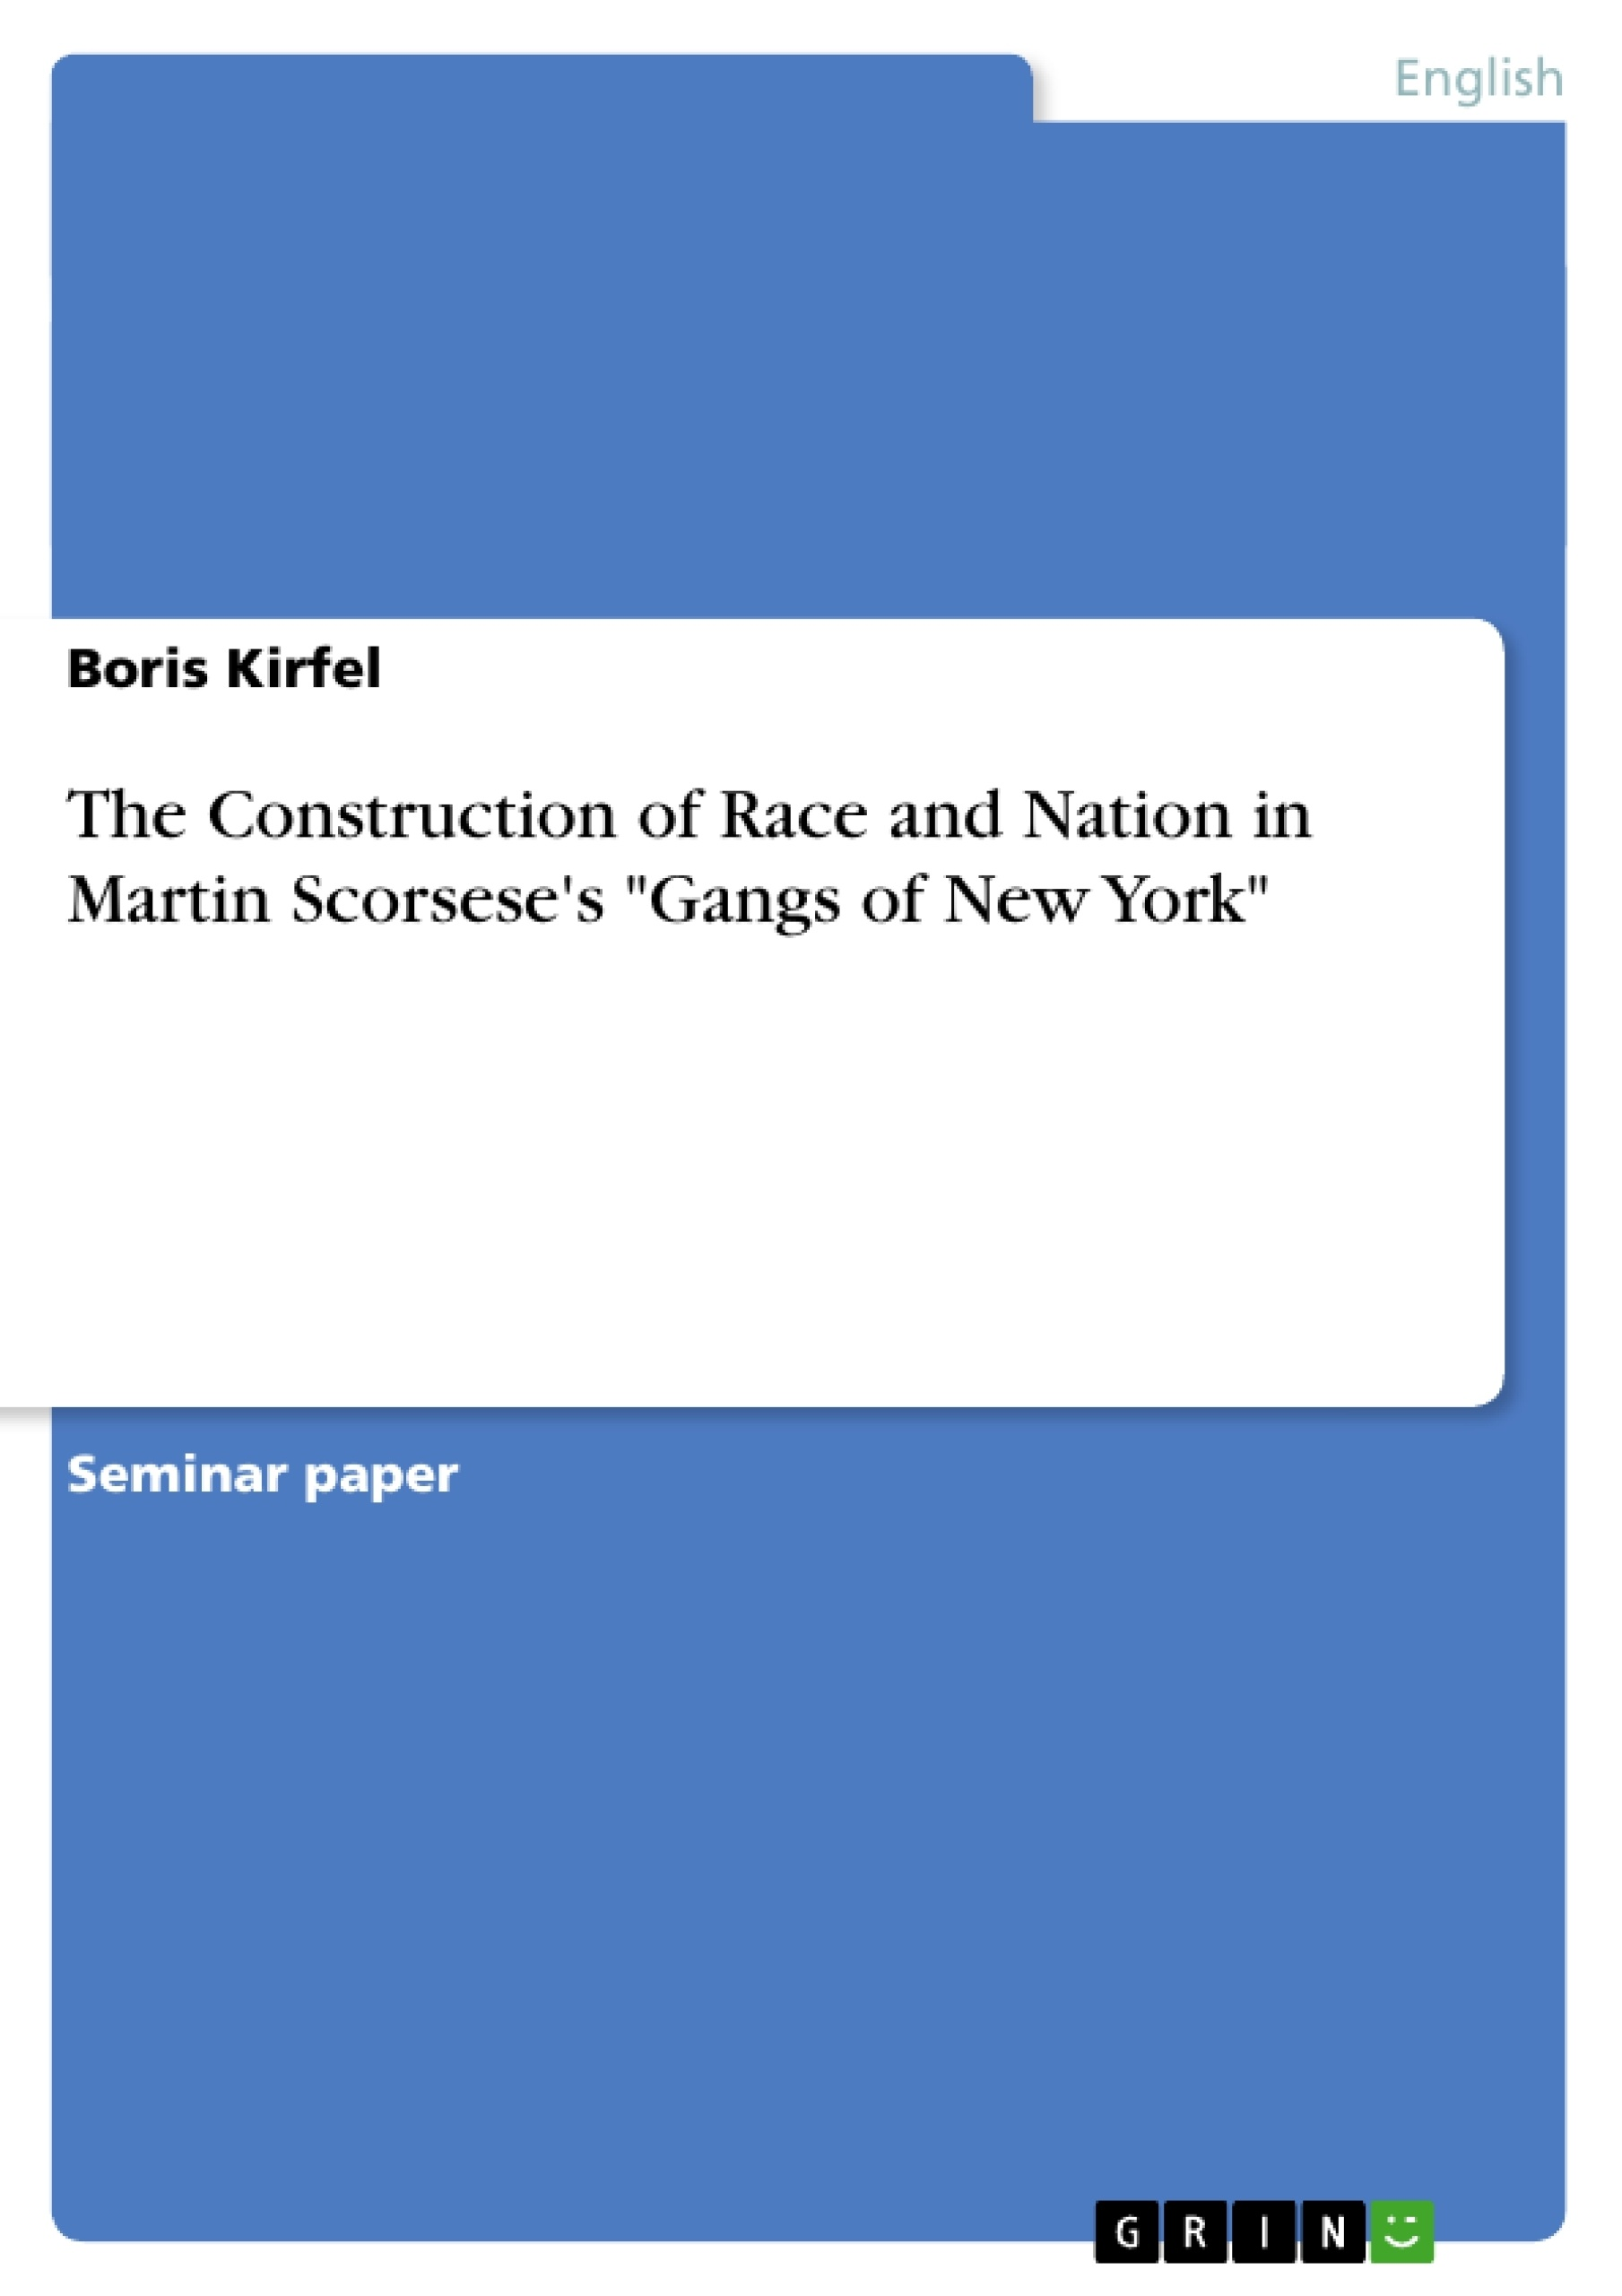 """Title: The Construction of Race and Nation in Martin Scorsese's """"Gangs of New York"""""""